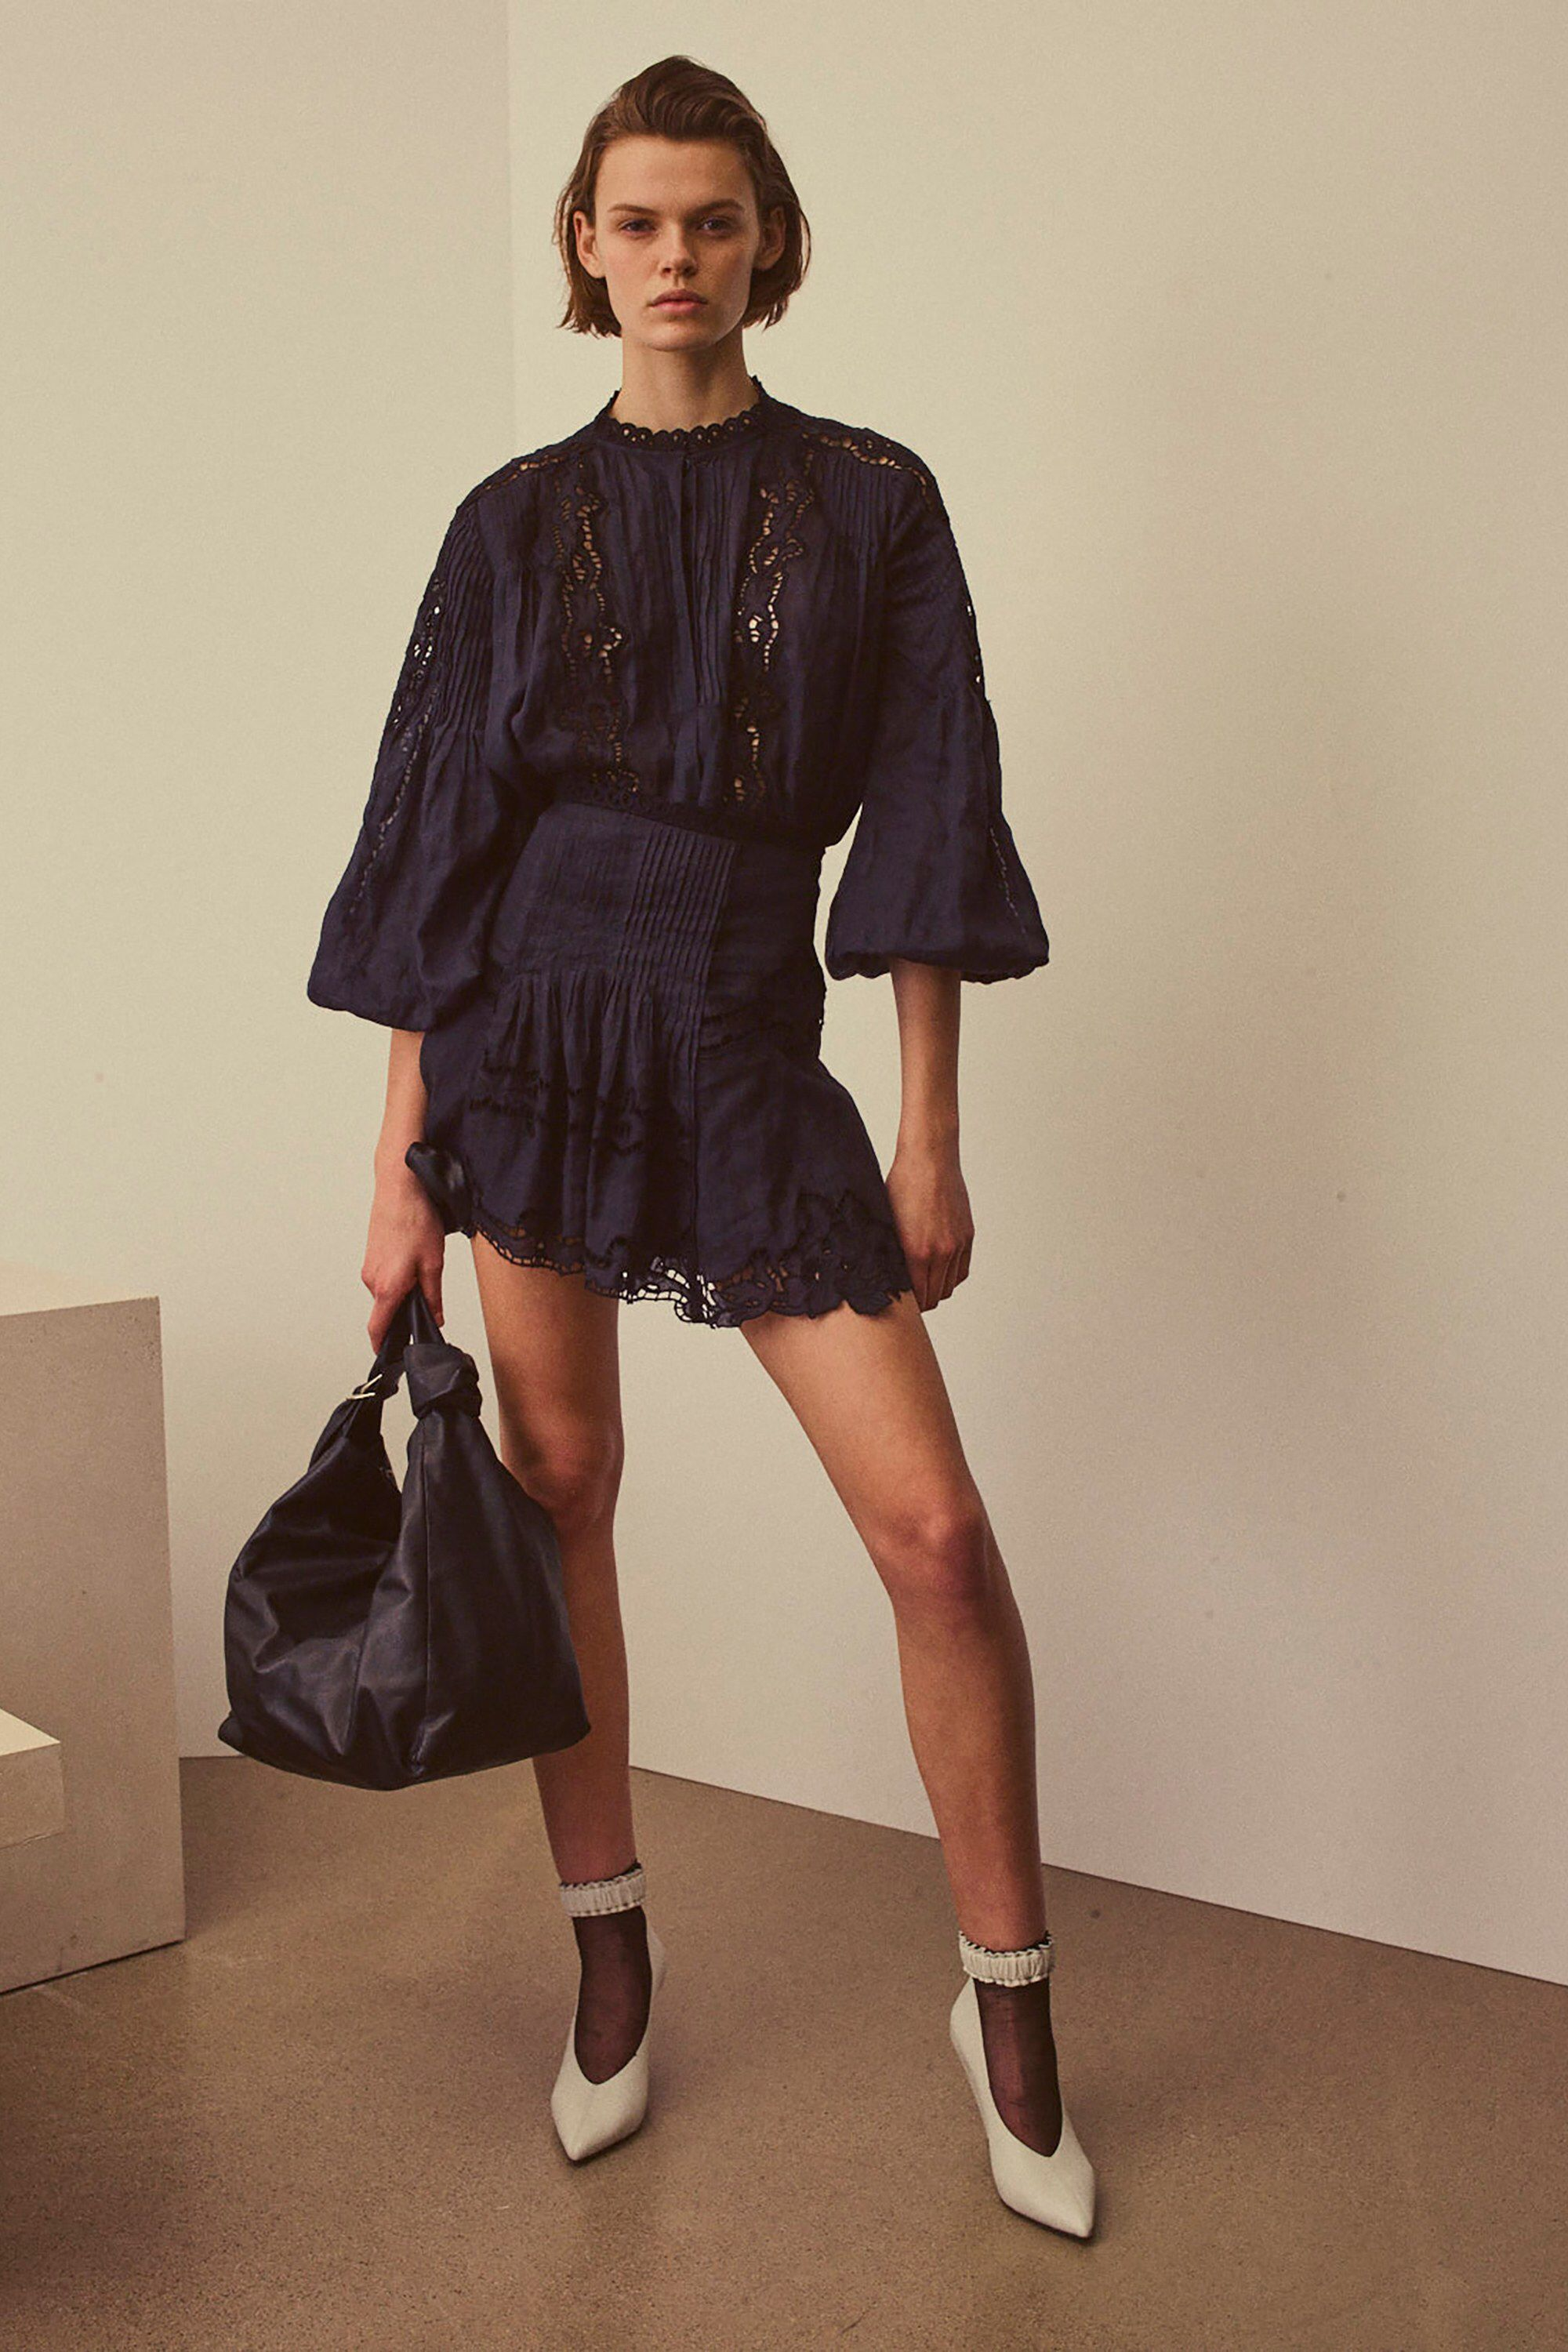 to wear - Marant isabel get the look video